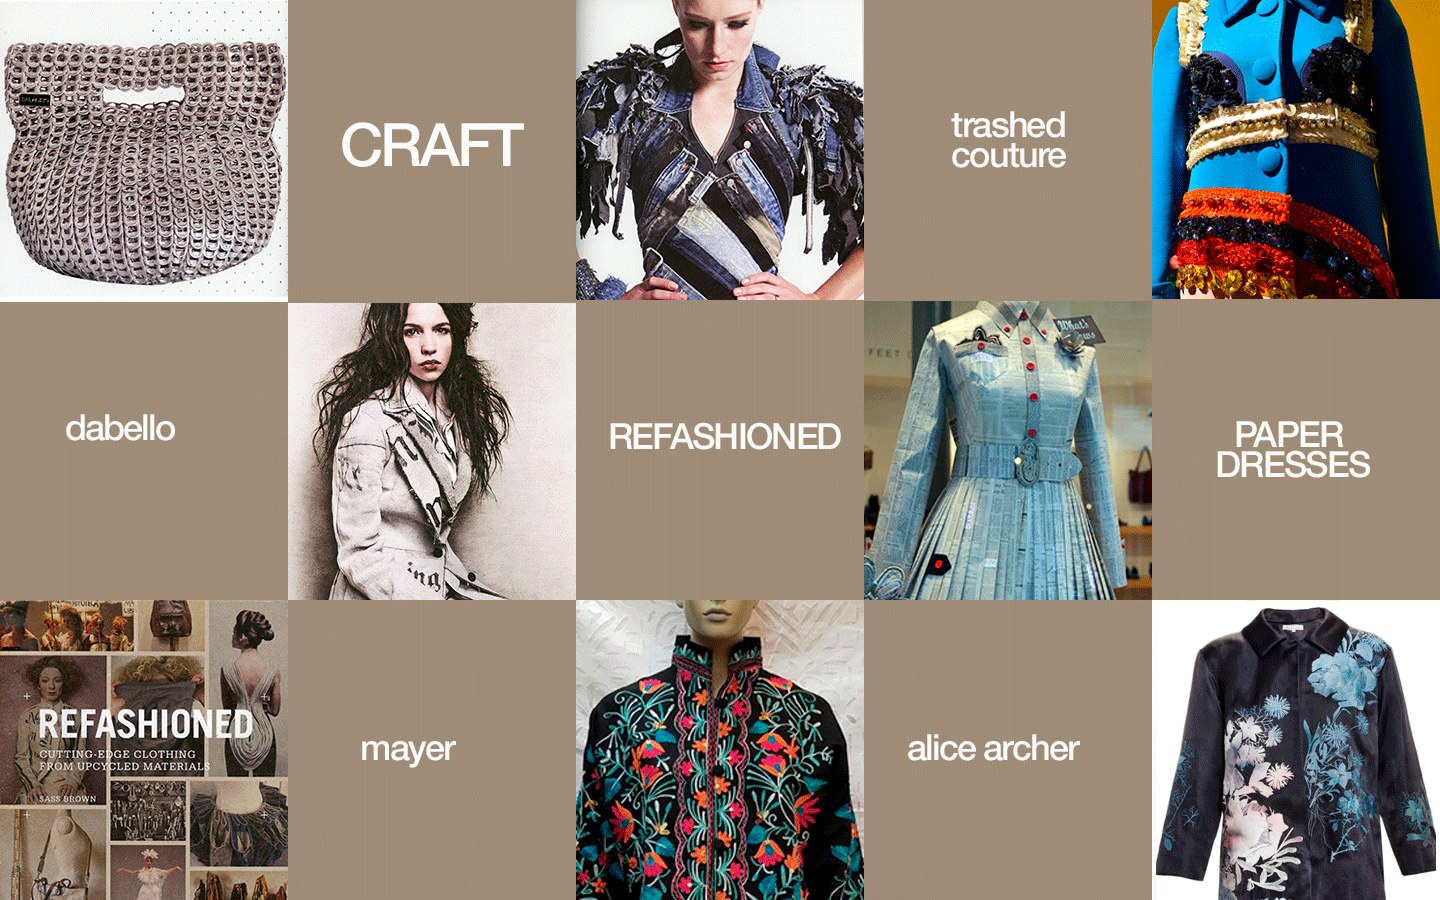 Craft Eco-Fashion Encyclopedia. Image shows work from Dalaleo, Trash-Couture, Mayer, paper dresses, Alice Archer, Refashioned making cutting edge clothing from upcycled material by Sass Brown. Published by Laurence King Publishing 2013. Graphics Kenneth Buddha Jeans